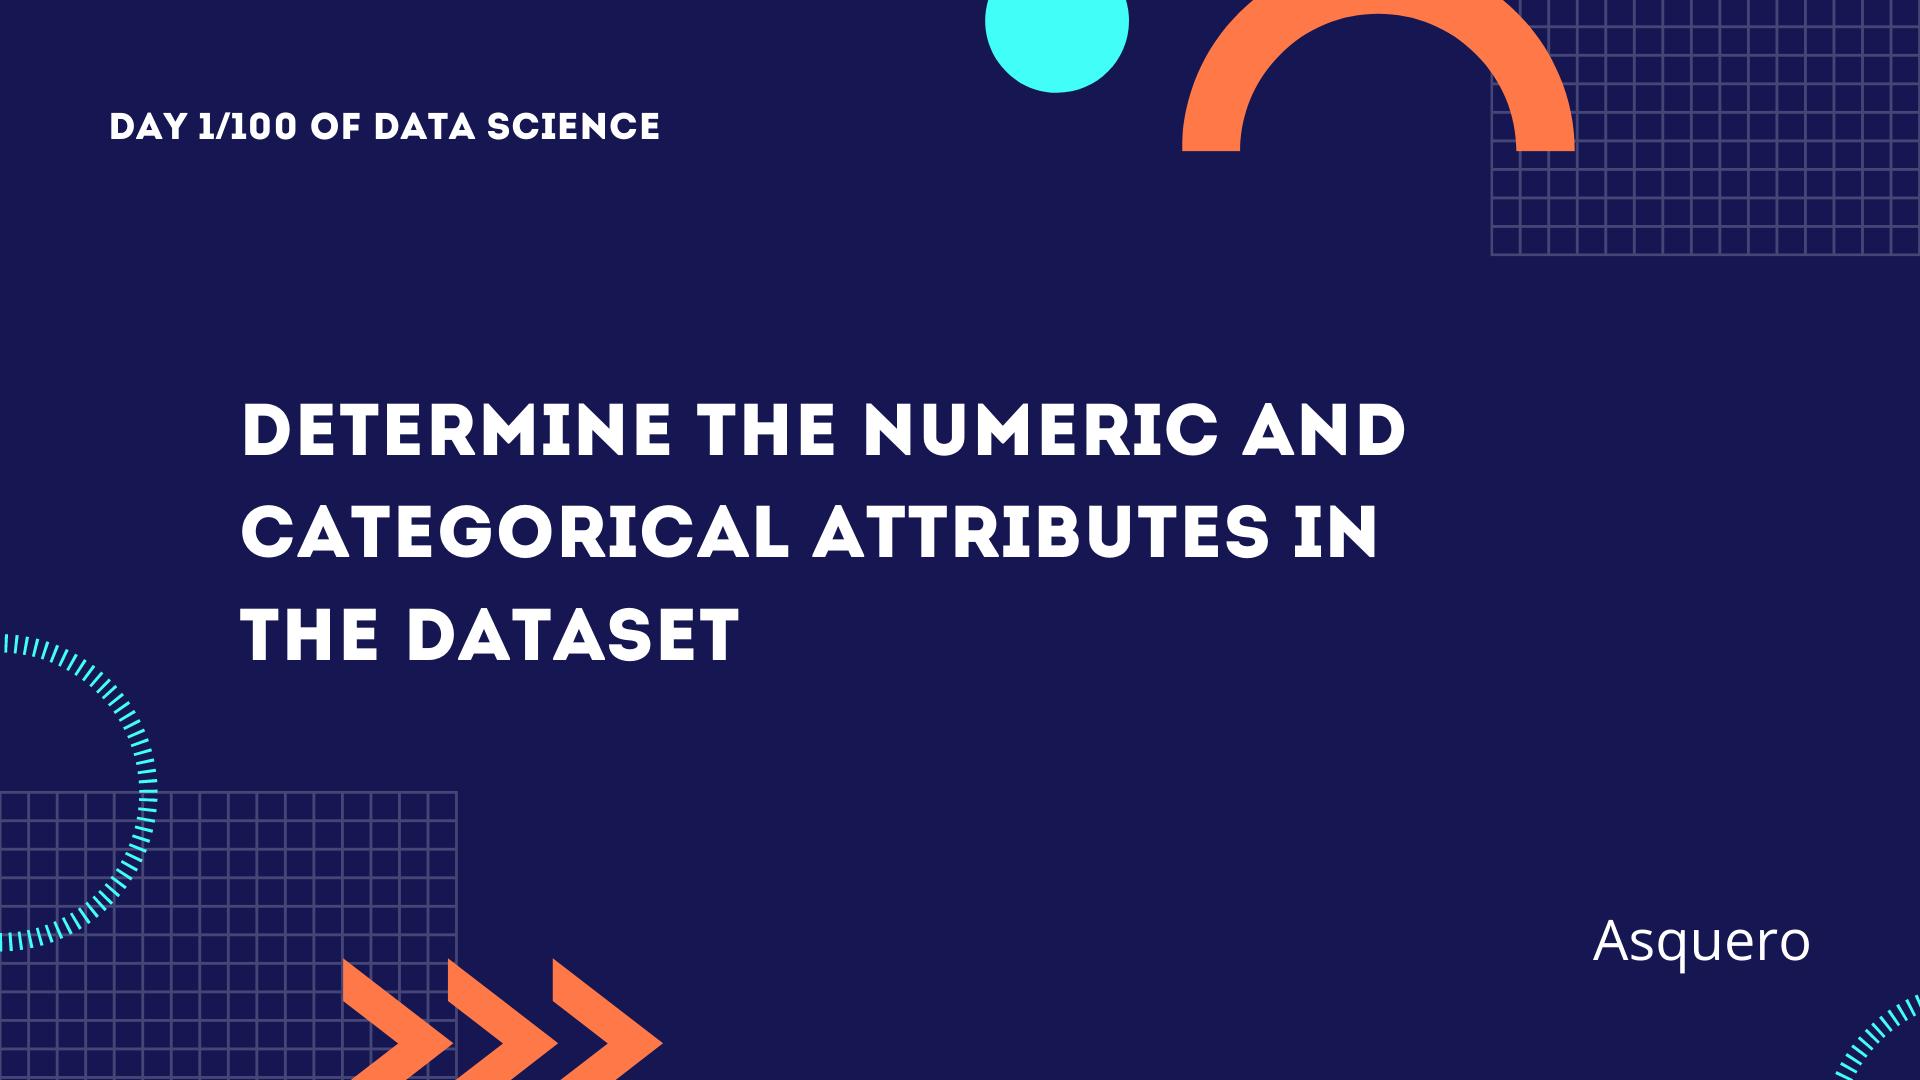 Determine the numeric and categorical attributes in the dataset